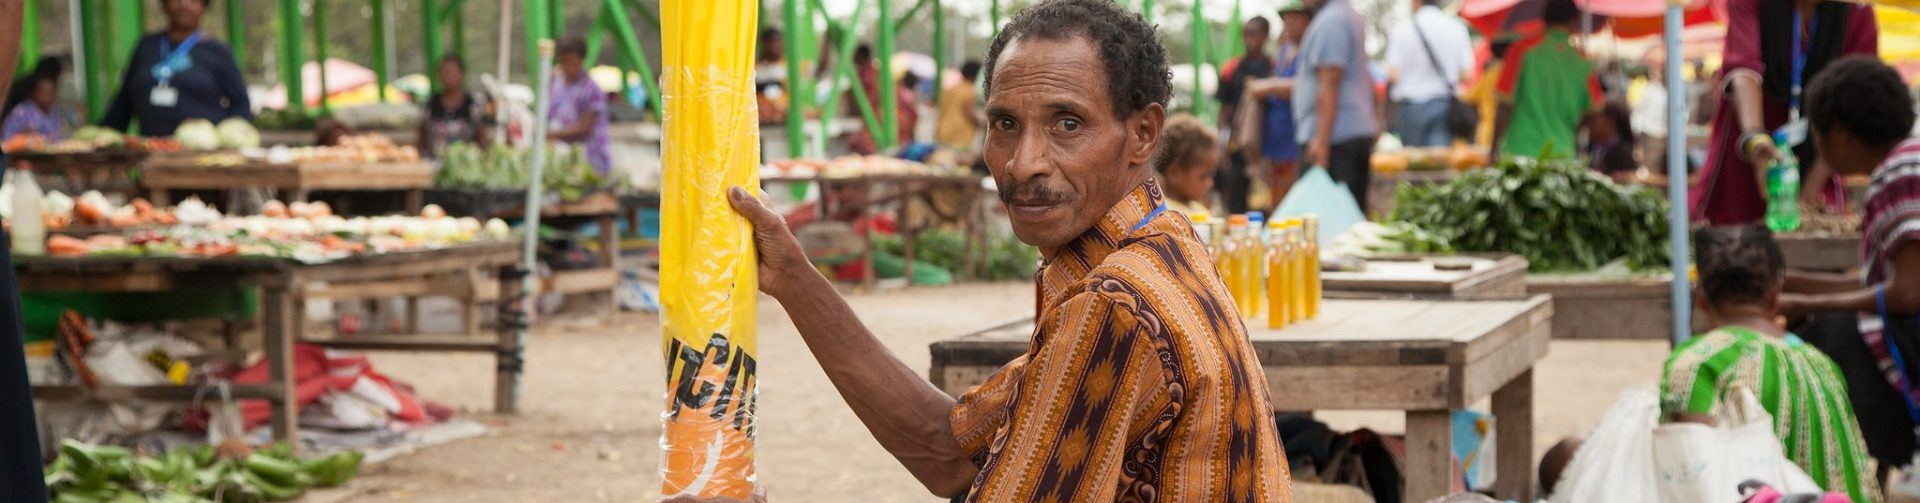 COVID-19 and other shocks facing Papua New Guinea's food economy